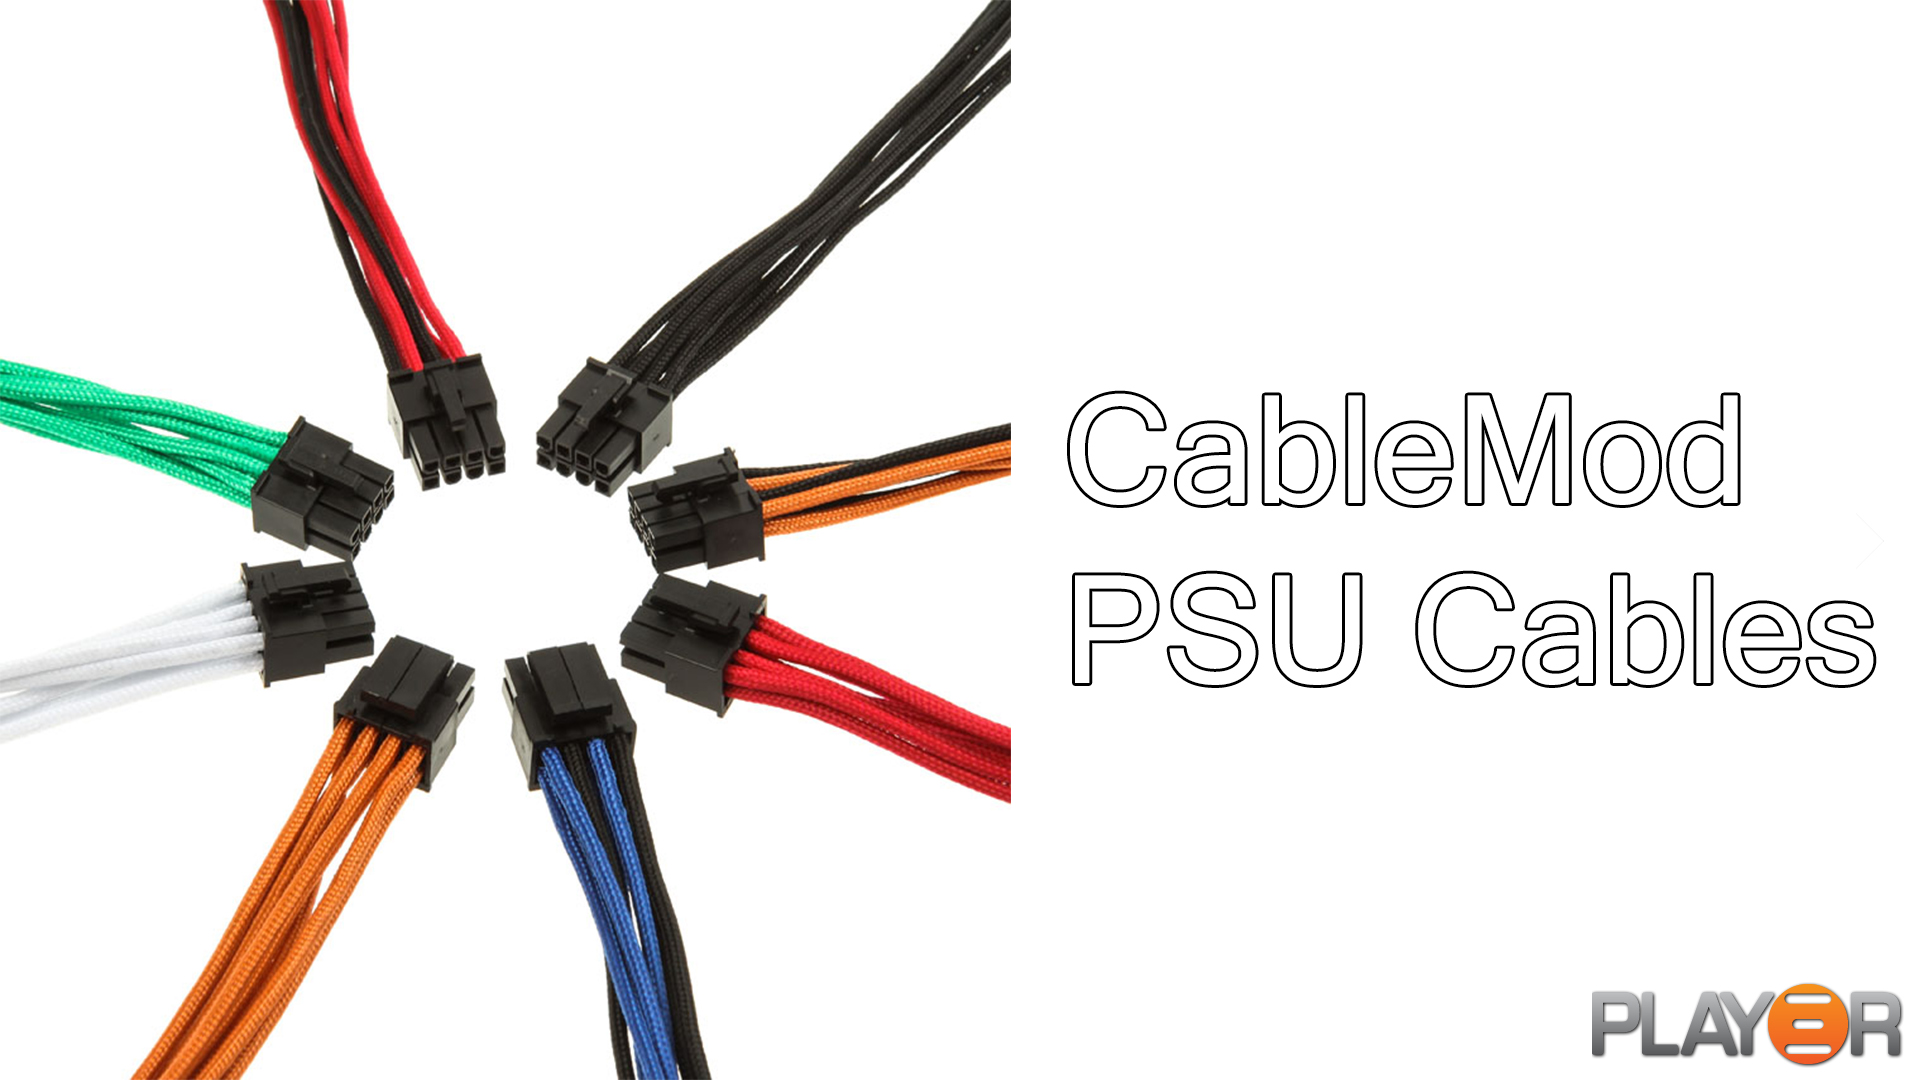 Overclockers Uk To Sell Cablemod Psu Cables Play3r